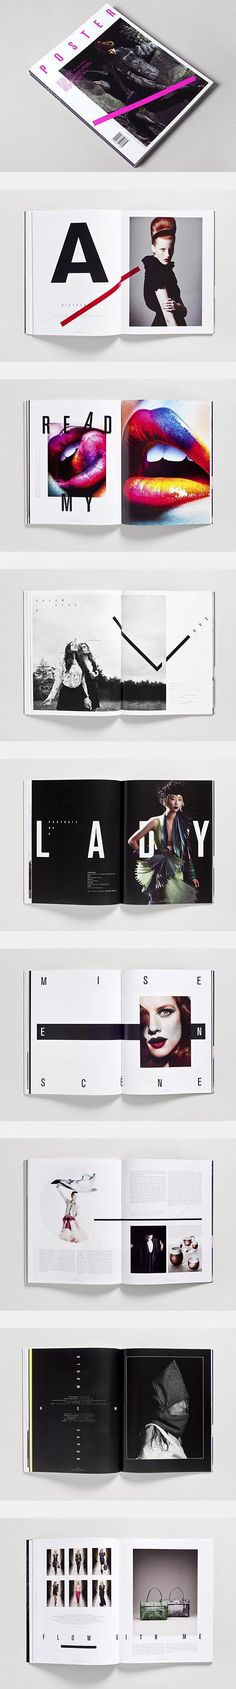 Poster Magazine by Toko Design If i had a magazine this would be my dream layout and theme running throughout the issues because of how clean and simple it looks but it has statement pieces, i think this is an editorial piece and love the use of mainly black and white.